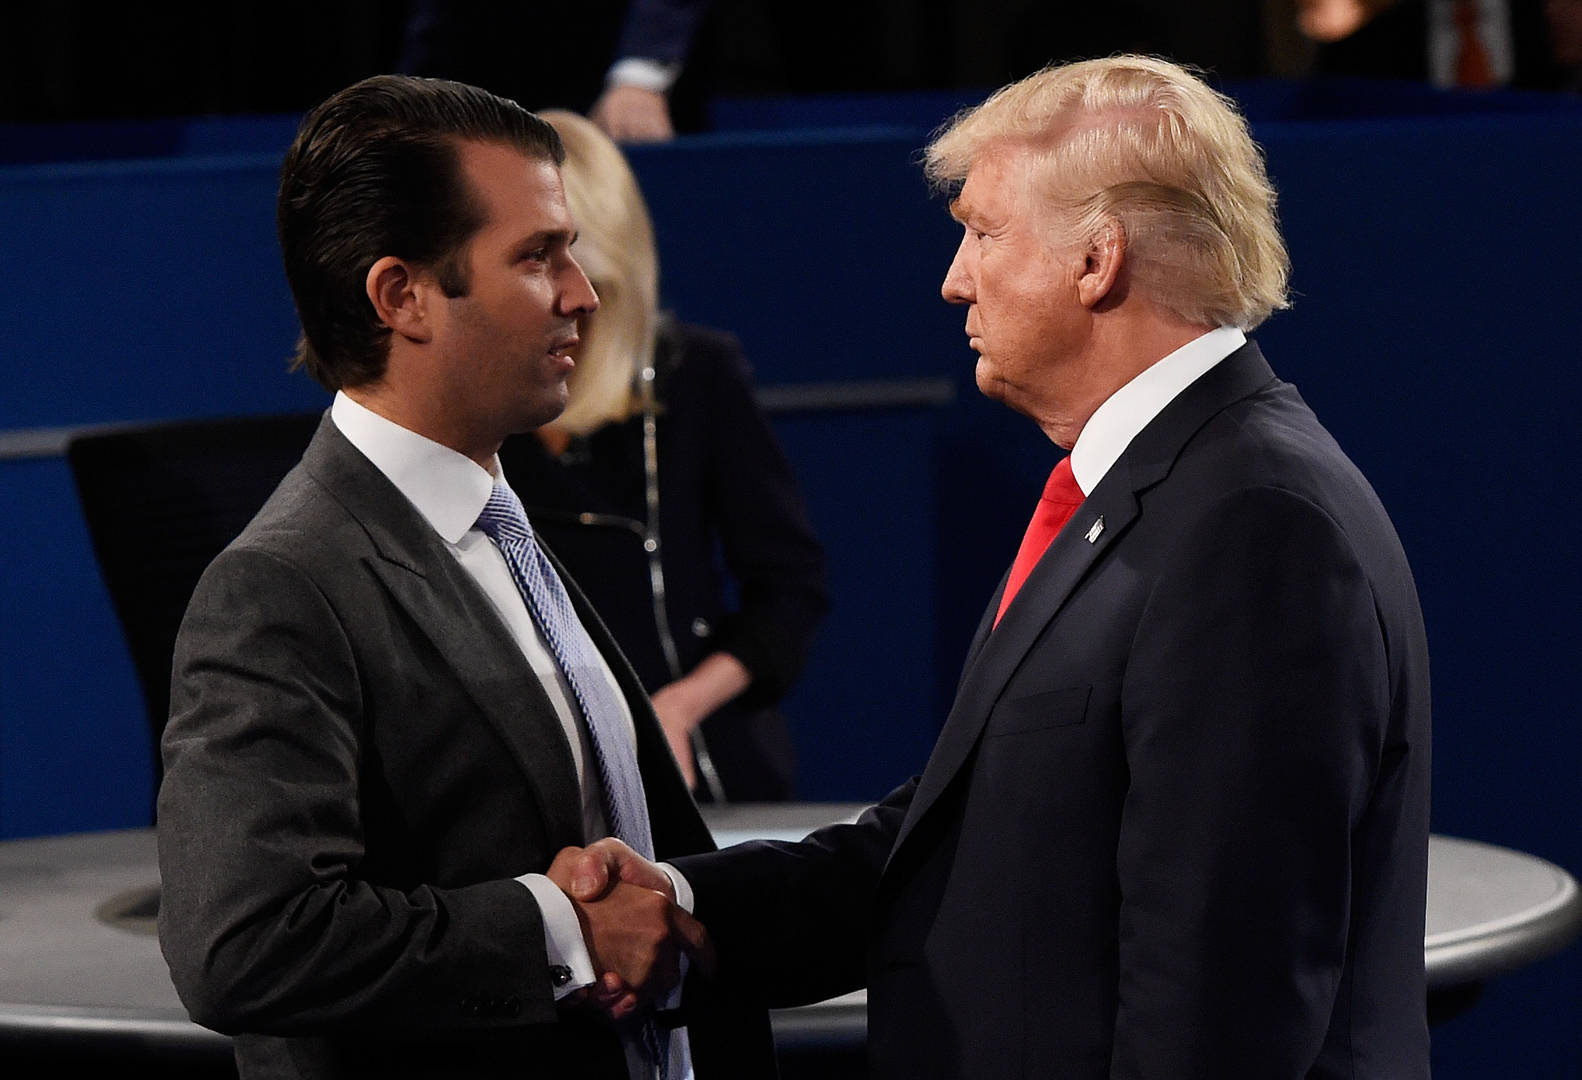 Donald Trump Jr refuses to condemn Kyle Rittenhouse double killings